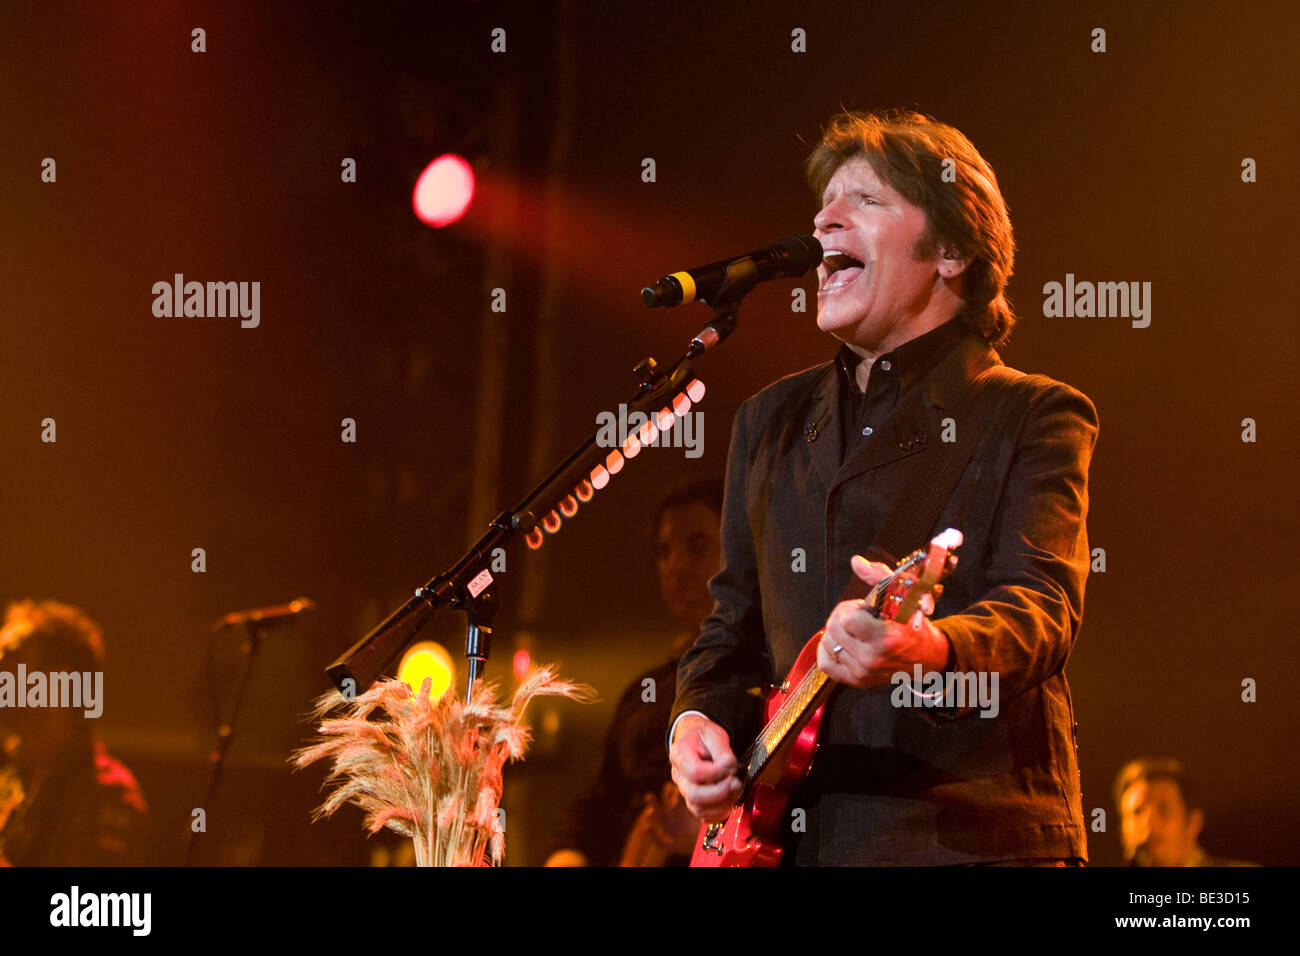 The U.S. singer and songwriter John Fogerty live at the Blue Balls Festival in the Luzernersaal hall of the KKL - Stock Image